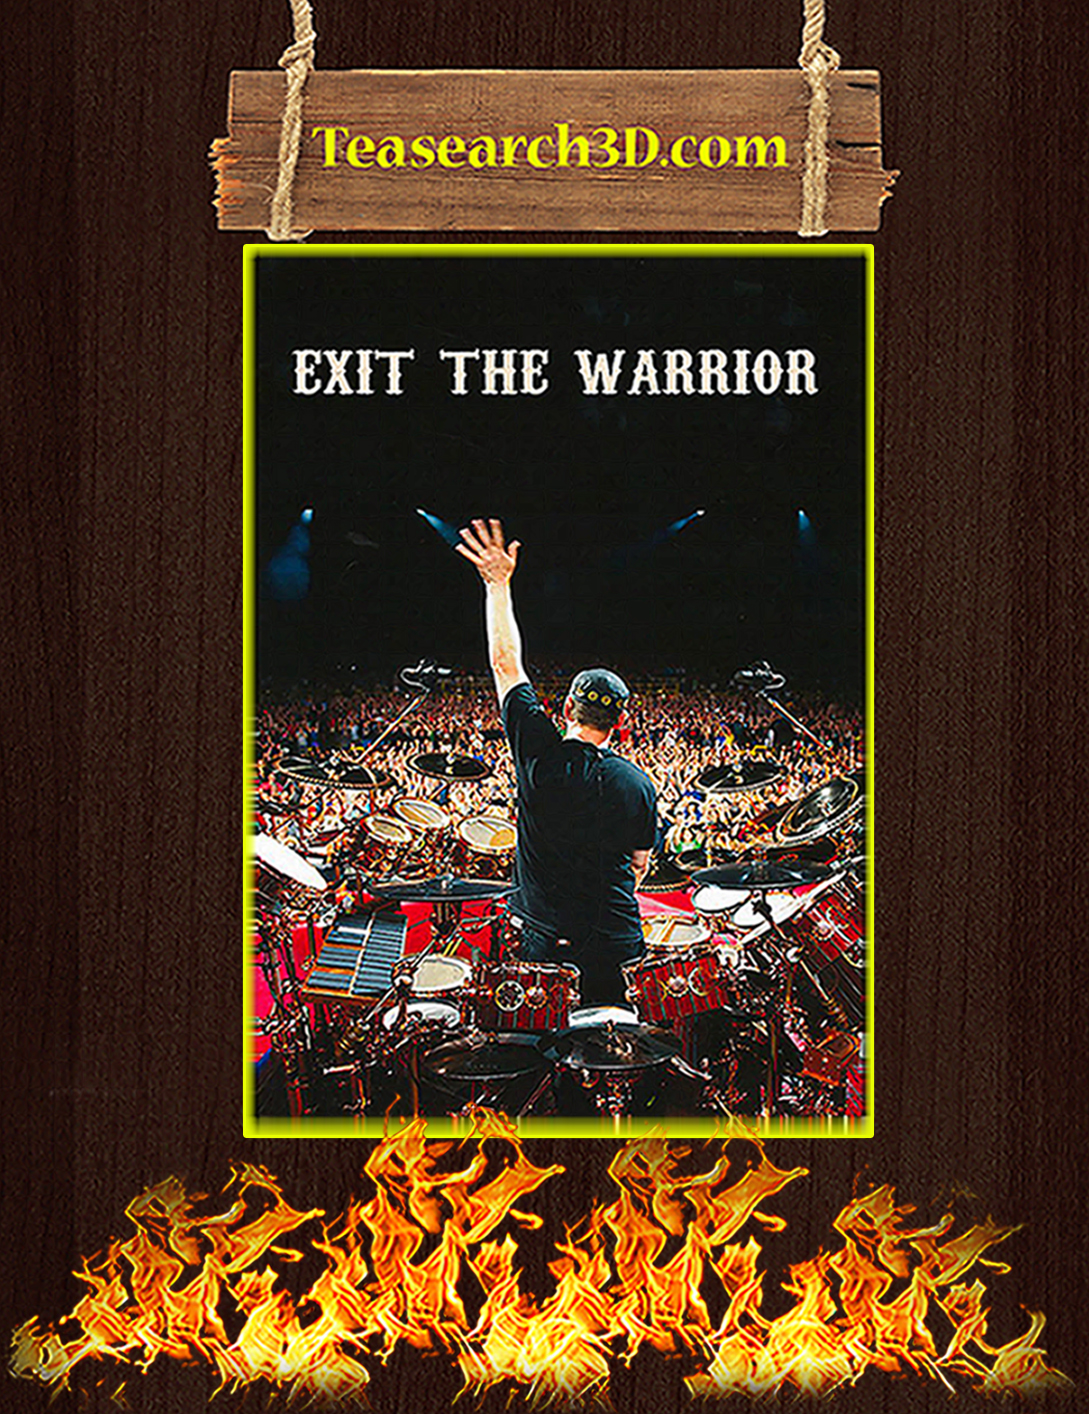 Neil peart exit the warrior poster A2